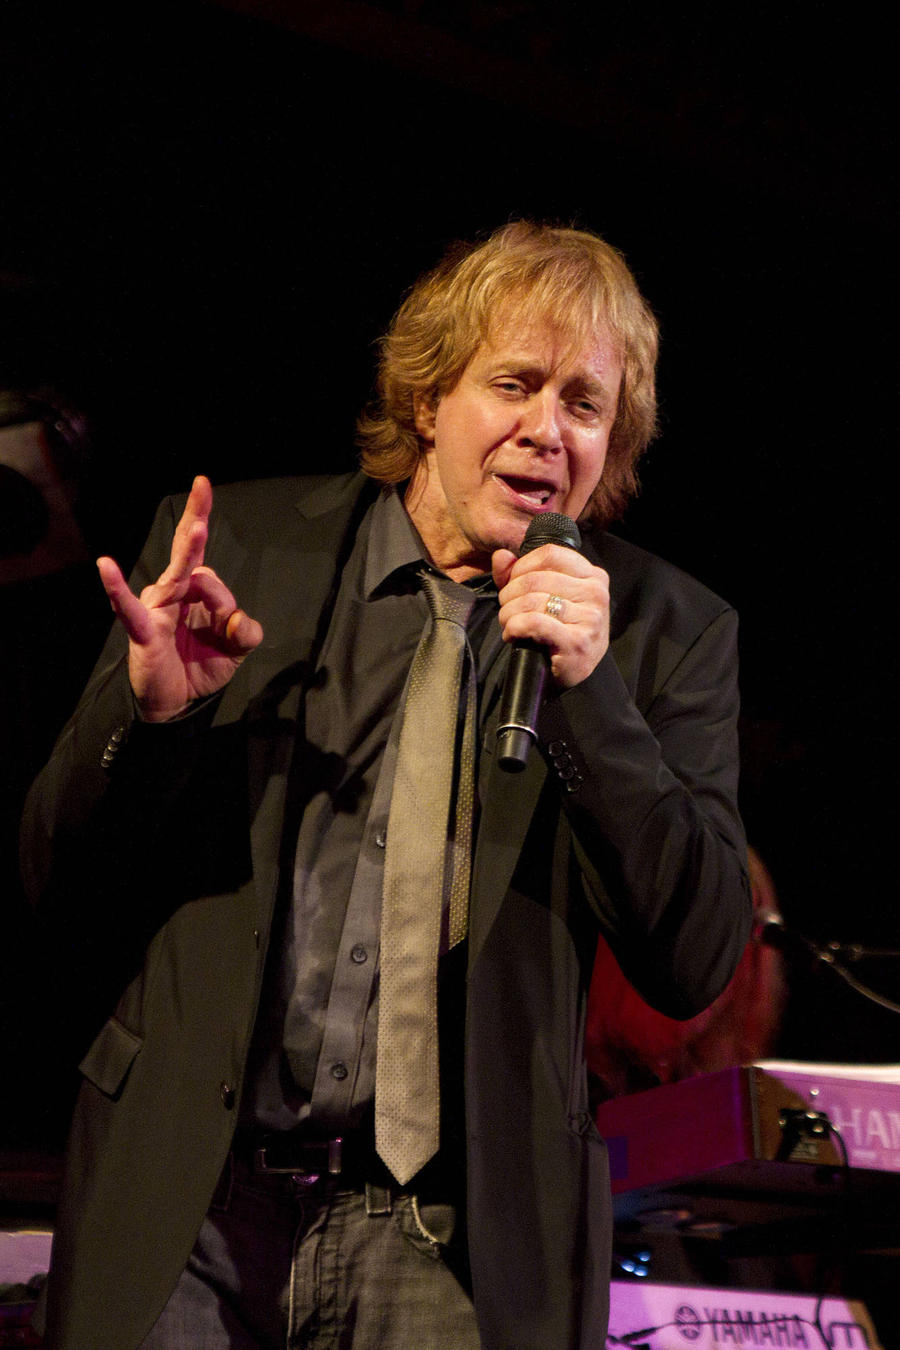 Eddie Money Claims Drummer's Lawsuit Is 'Malicious'